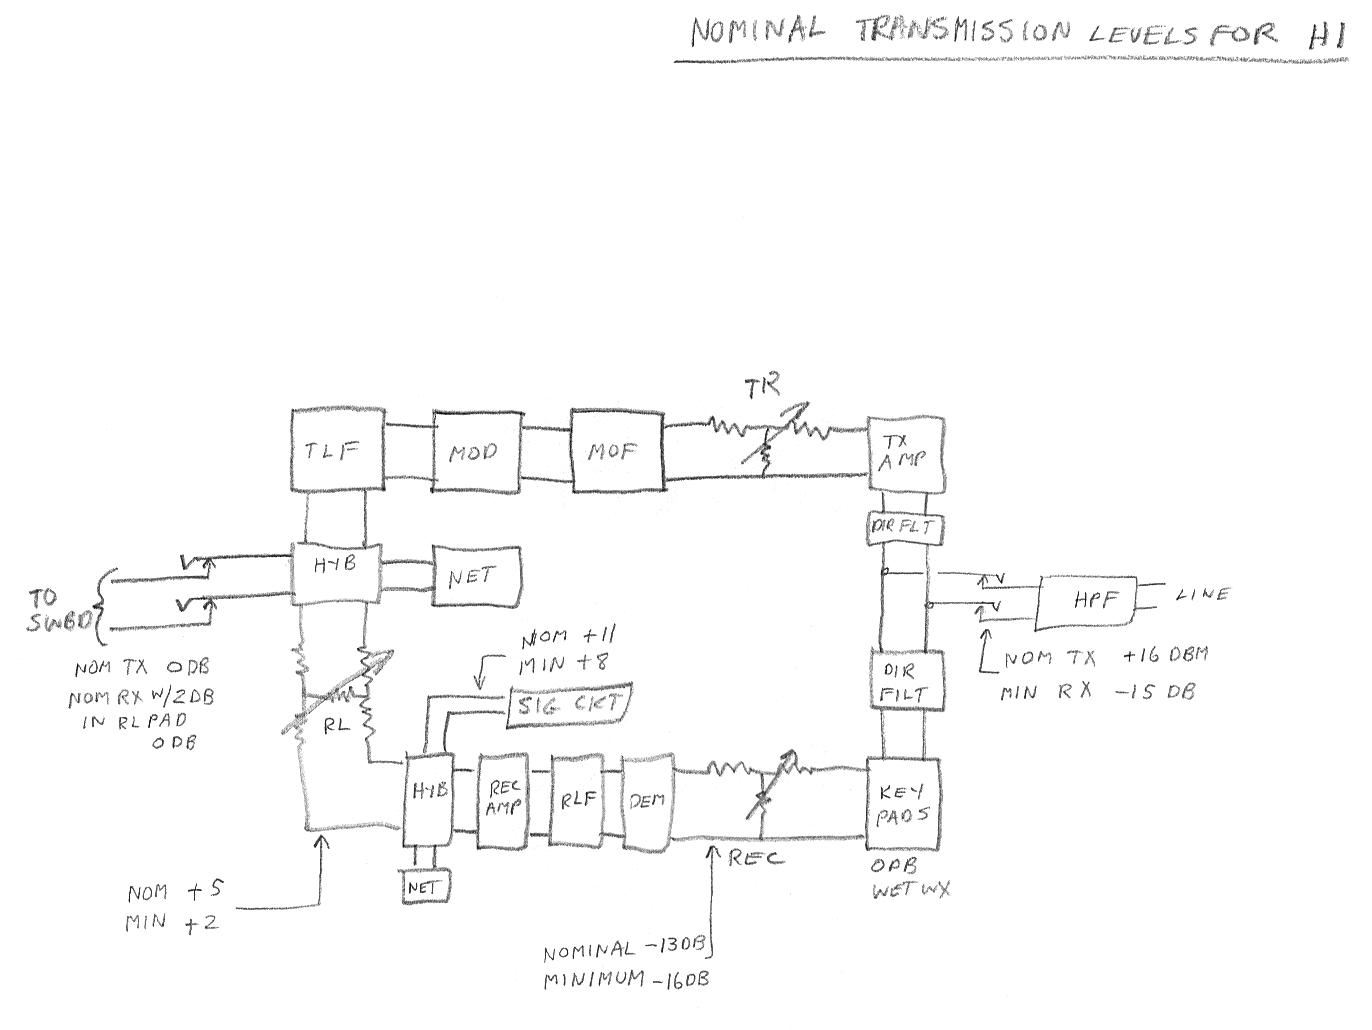 weco_h1_levels telephone technical references weko wiring diagram at readyjetset.co